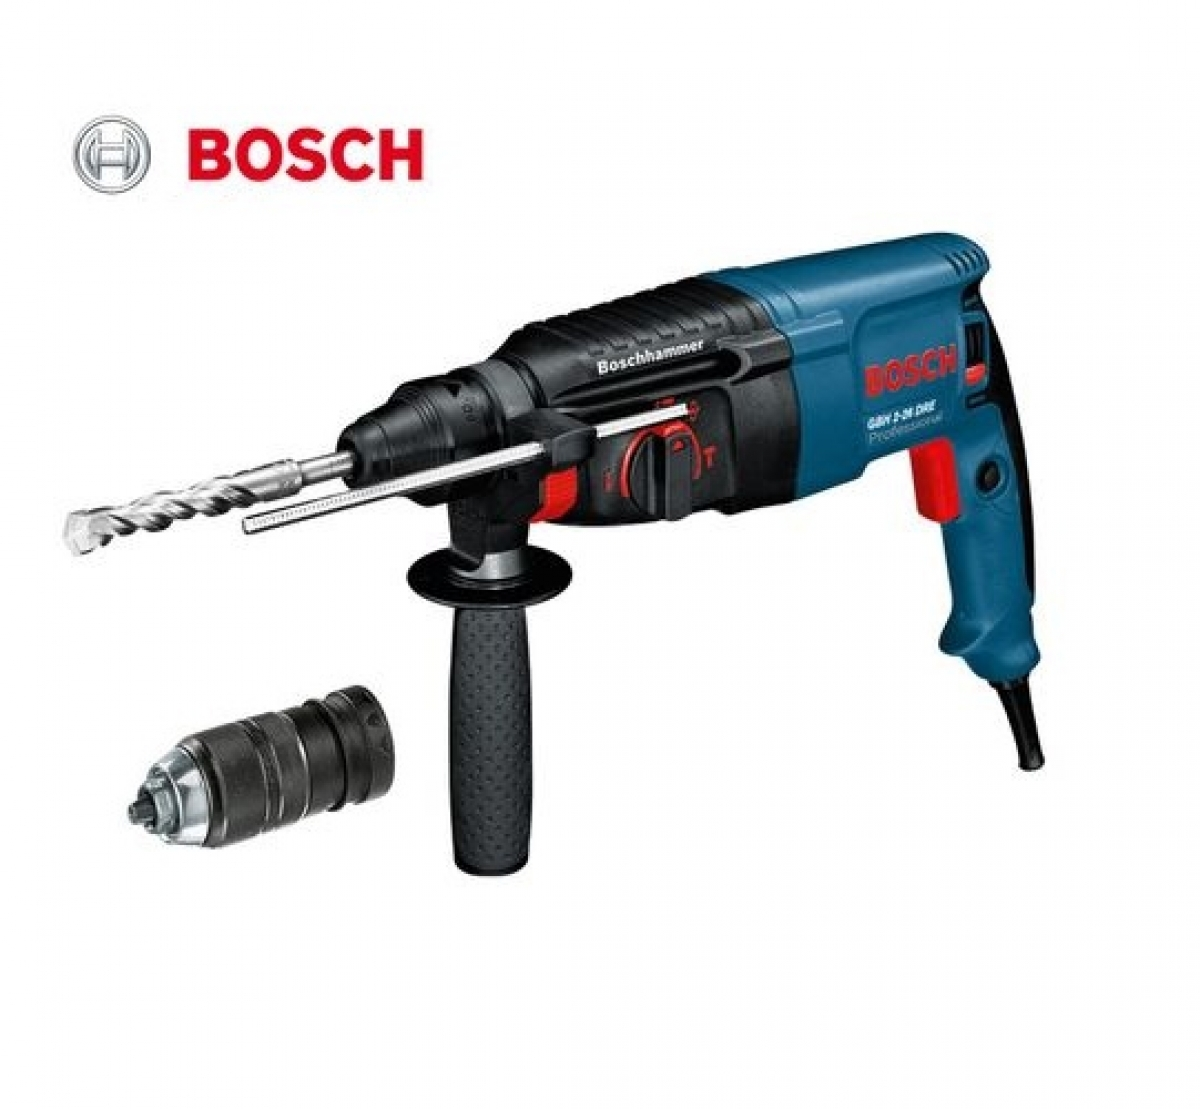 bosch gbh 800w 26mm sds plus rotary hammer my power tools. Black Bedroom Furniture Sets. Home Design Ideas